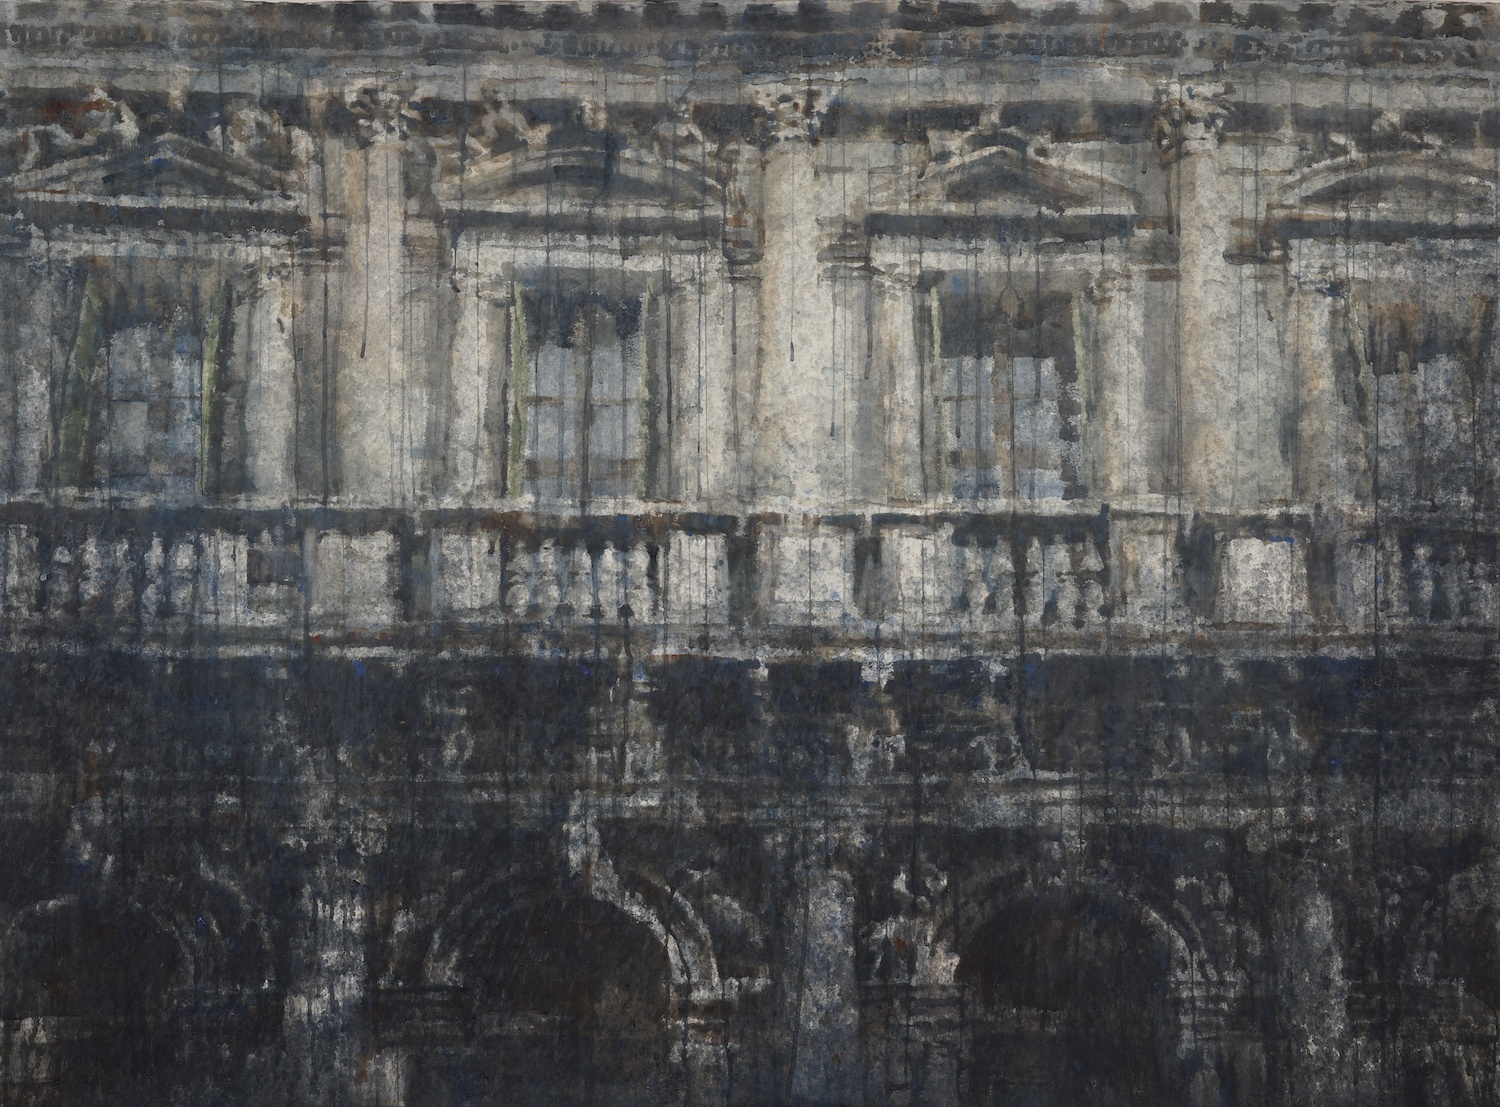 Windows of Venice I, 45x62 inches, (Private Collection)